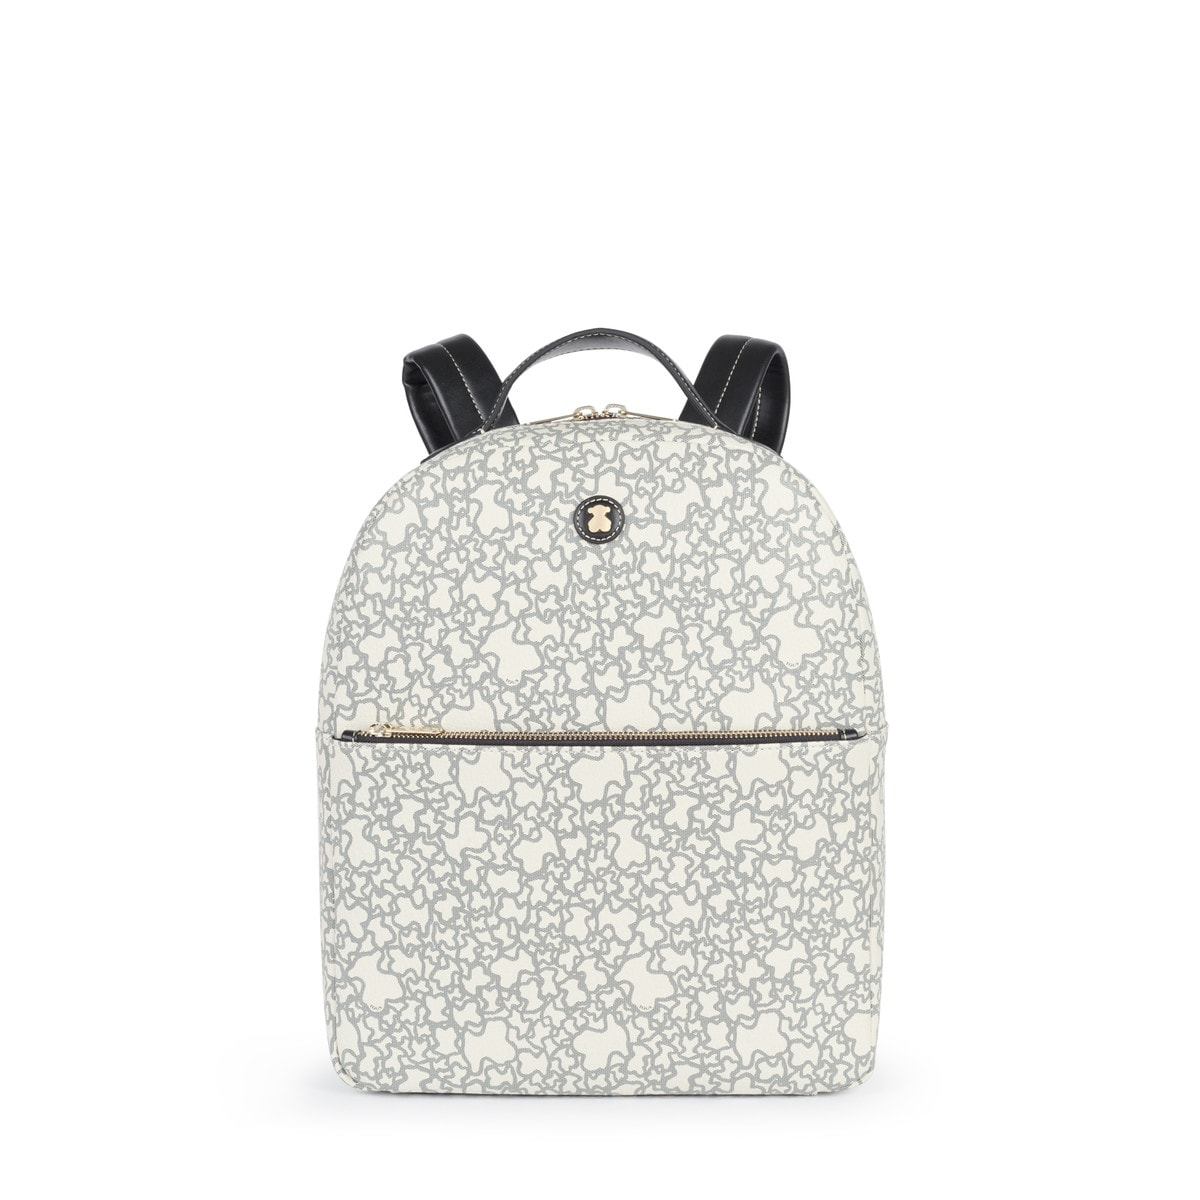 232b33f65 Beige Kaos Mini Backpack - Tous Site Puerto Rico